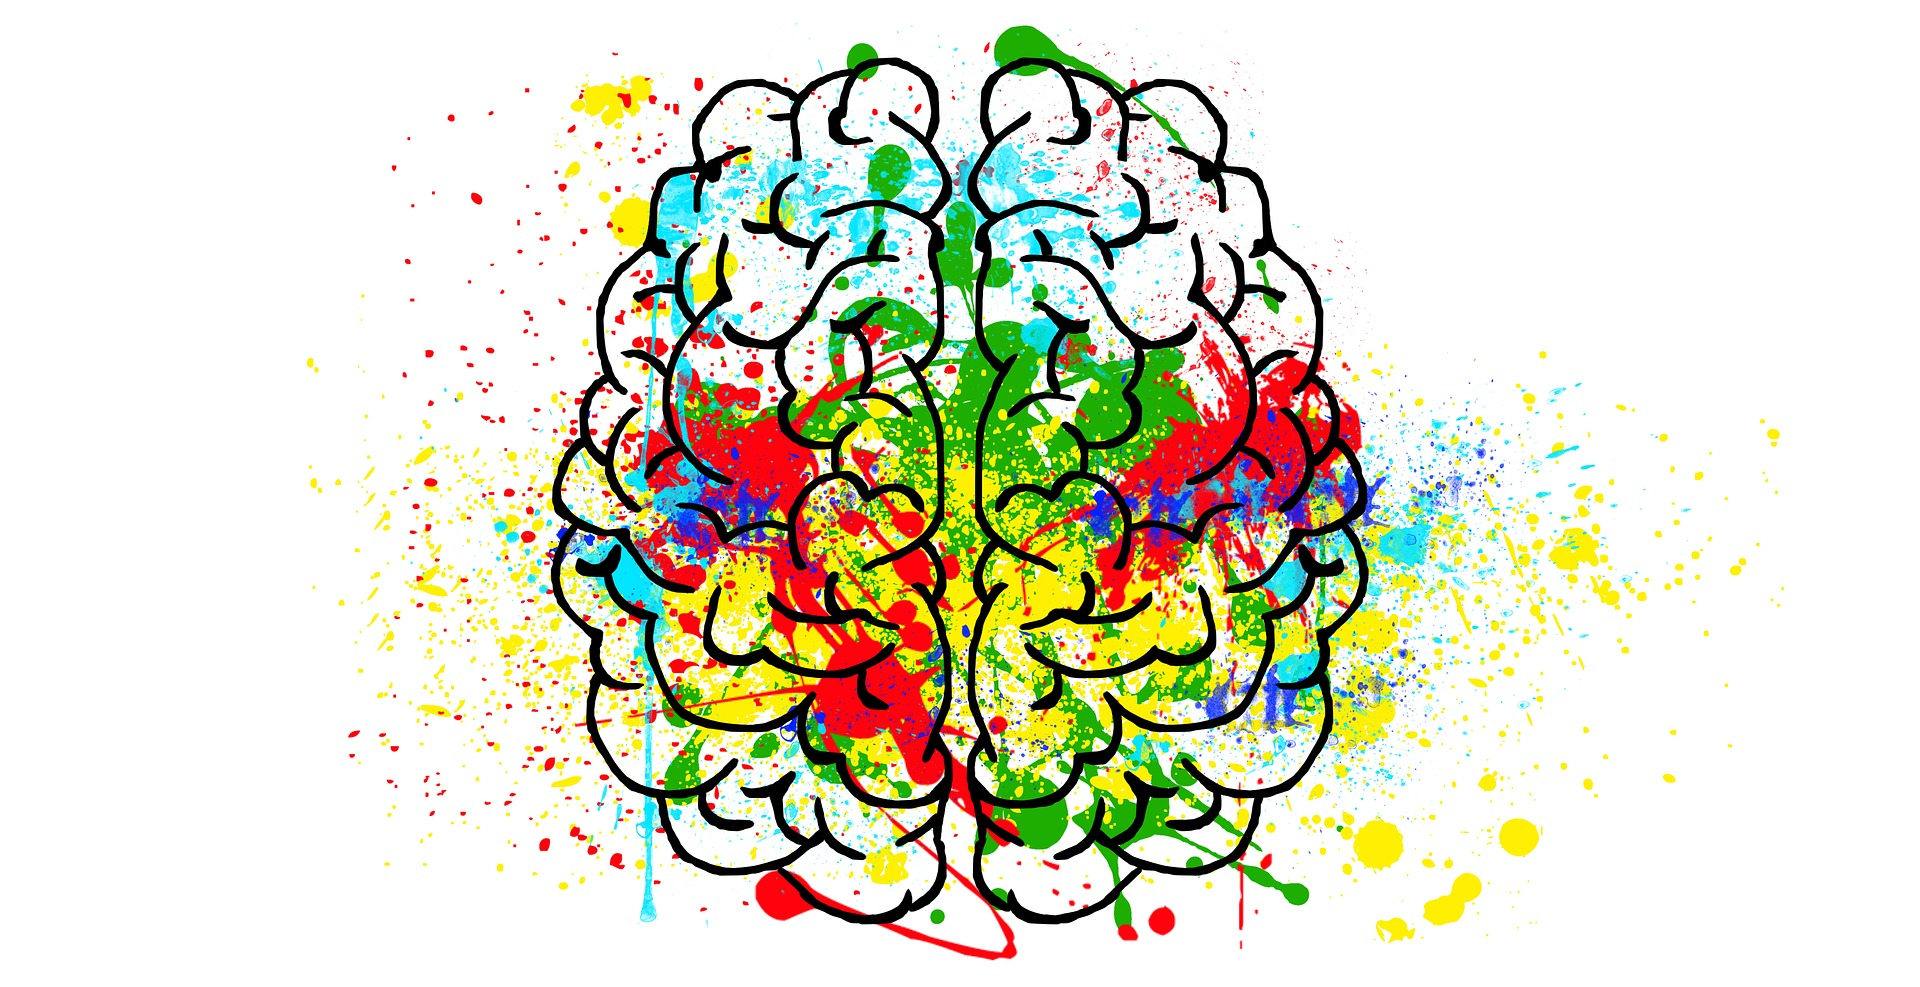 Black outline drawing of a human brain from the top with paint-like splatters of color on it.